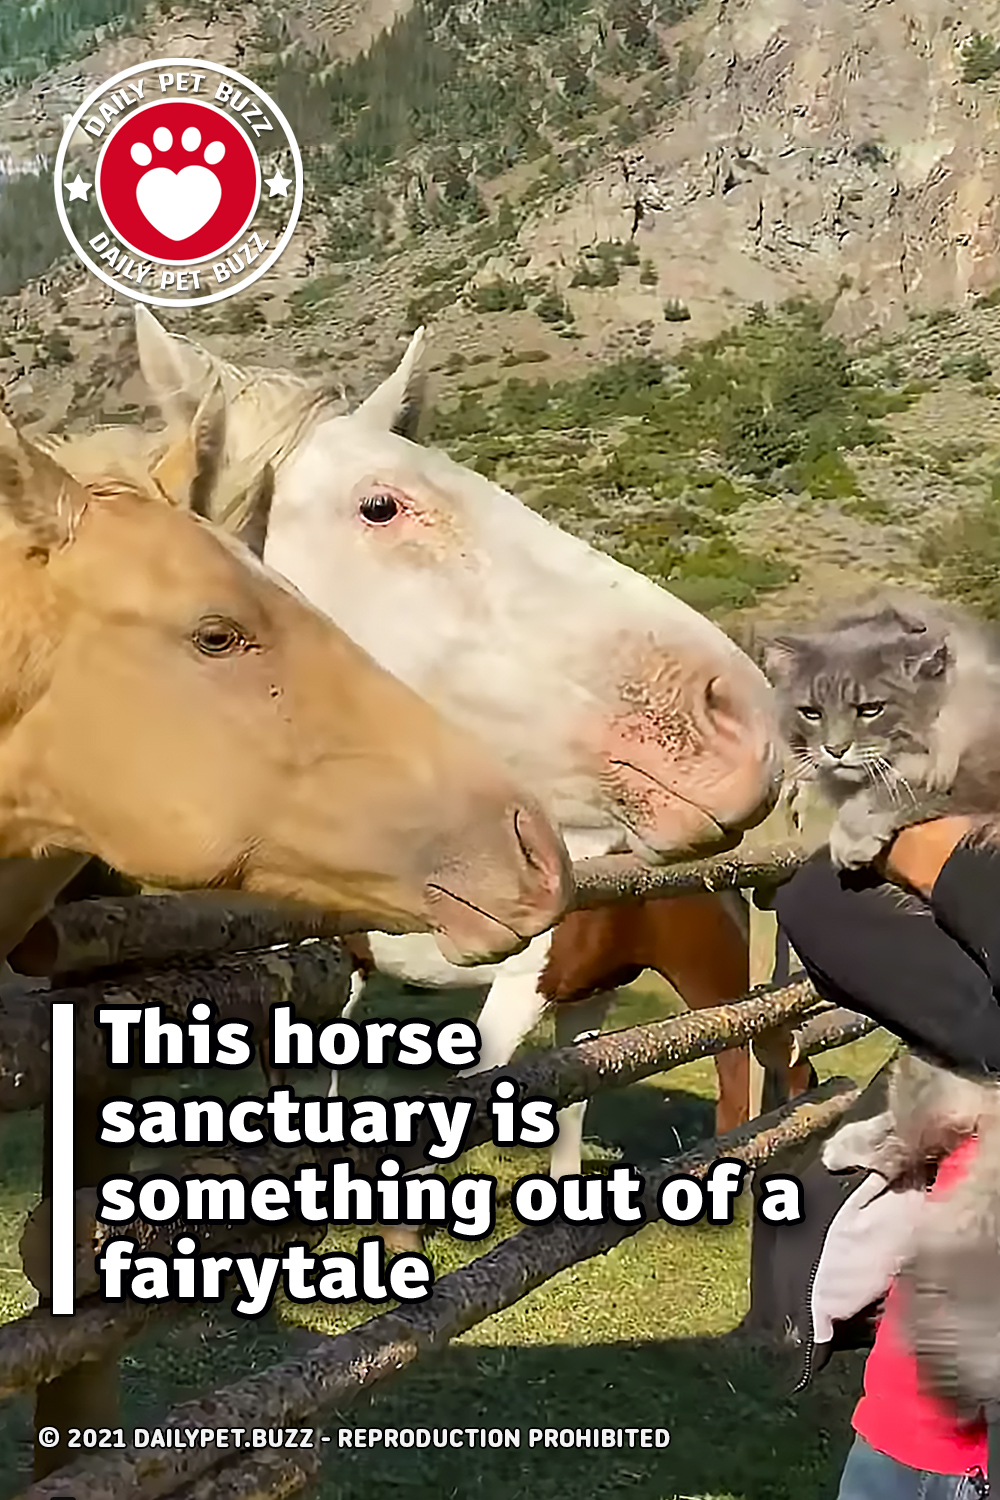 This horse sanctuary is something out of a fairytale